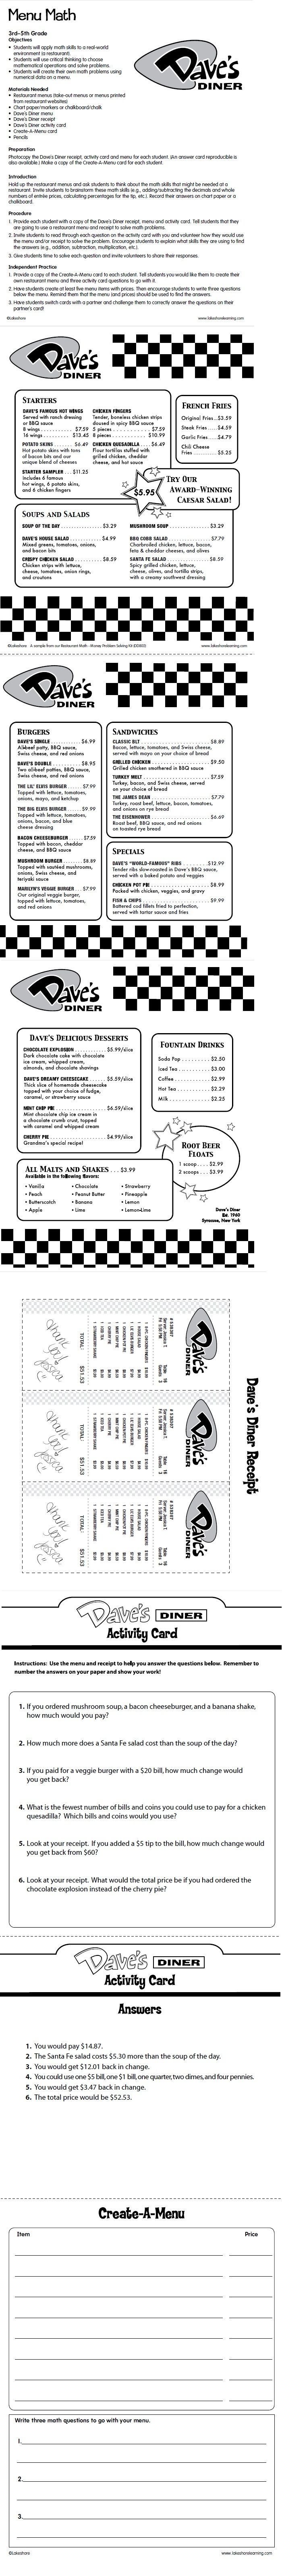 Menu Math Lesson Plan from Lakeshore Learning #mathlessons